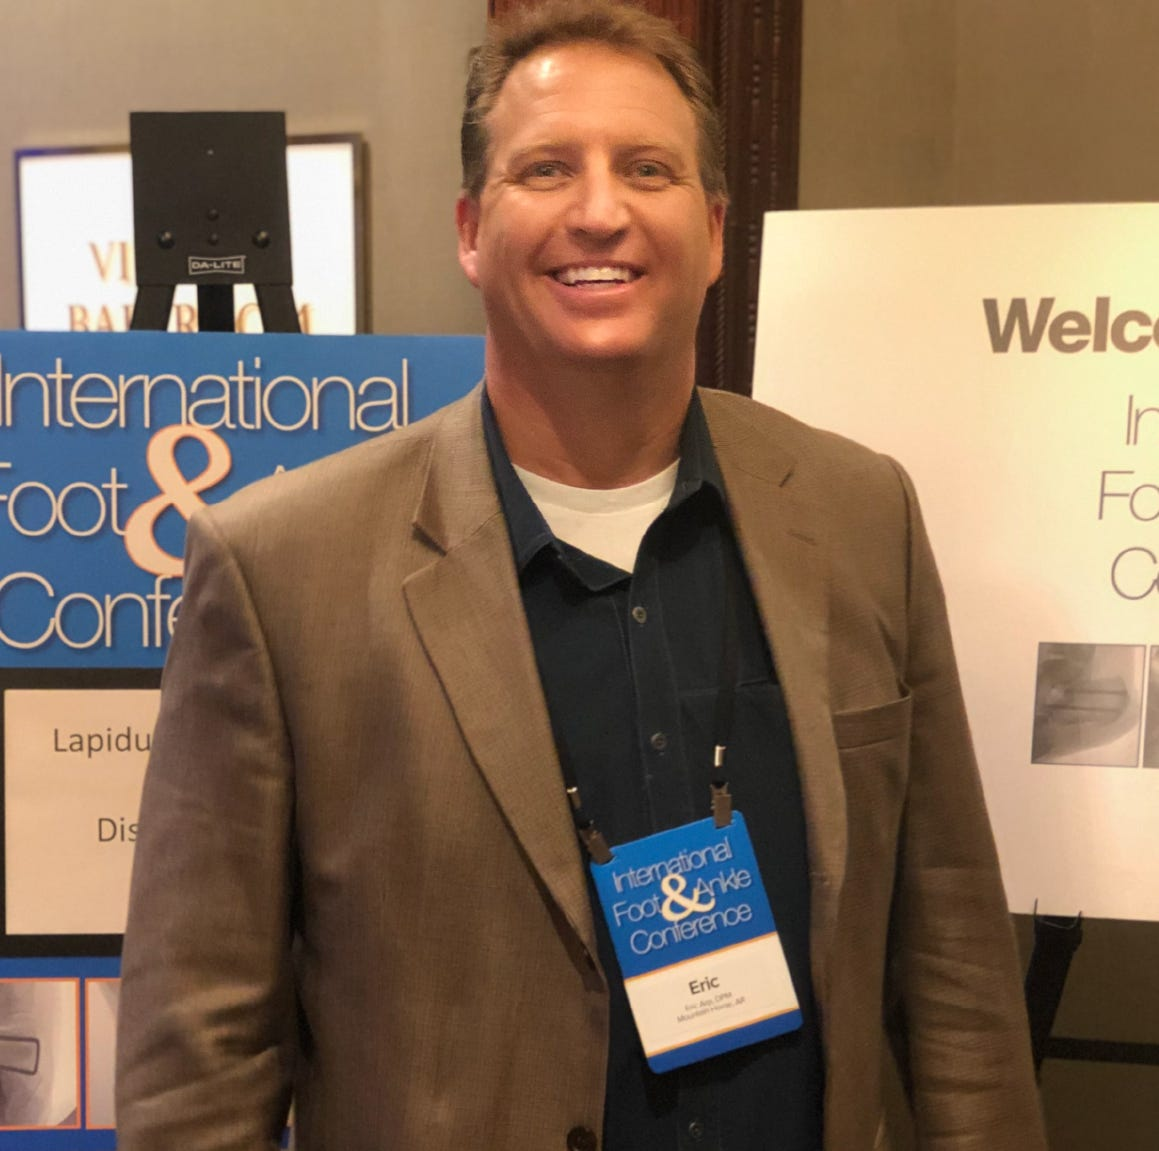 Dr. Arp attends training at Foot and Ankle Surgeons Conference